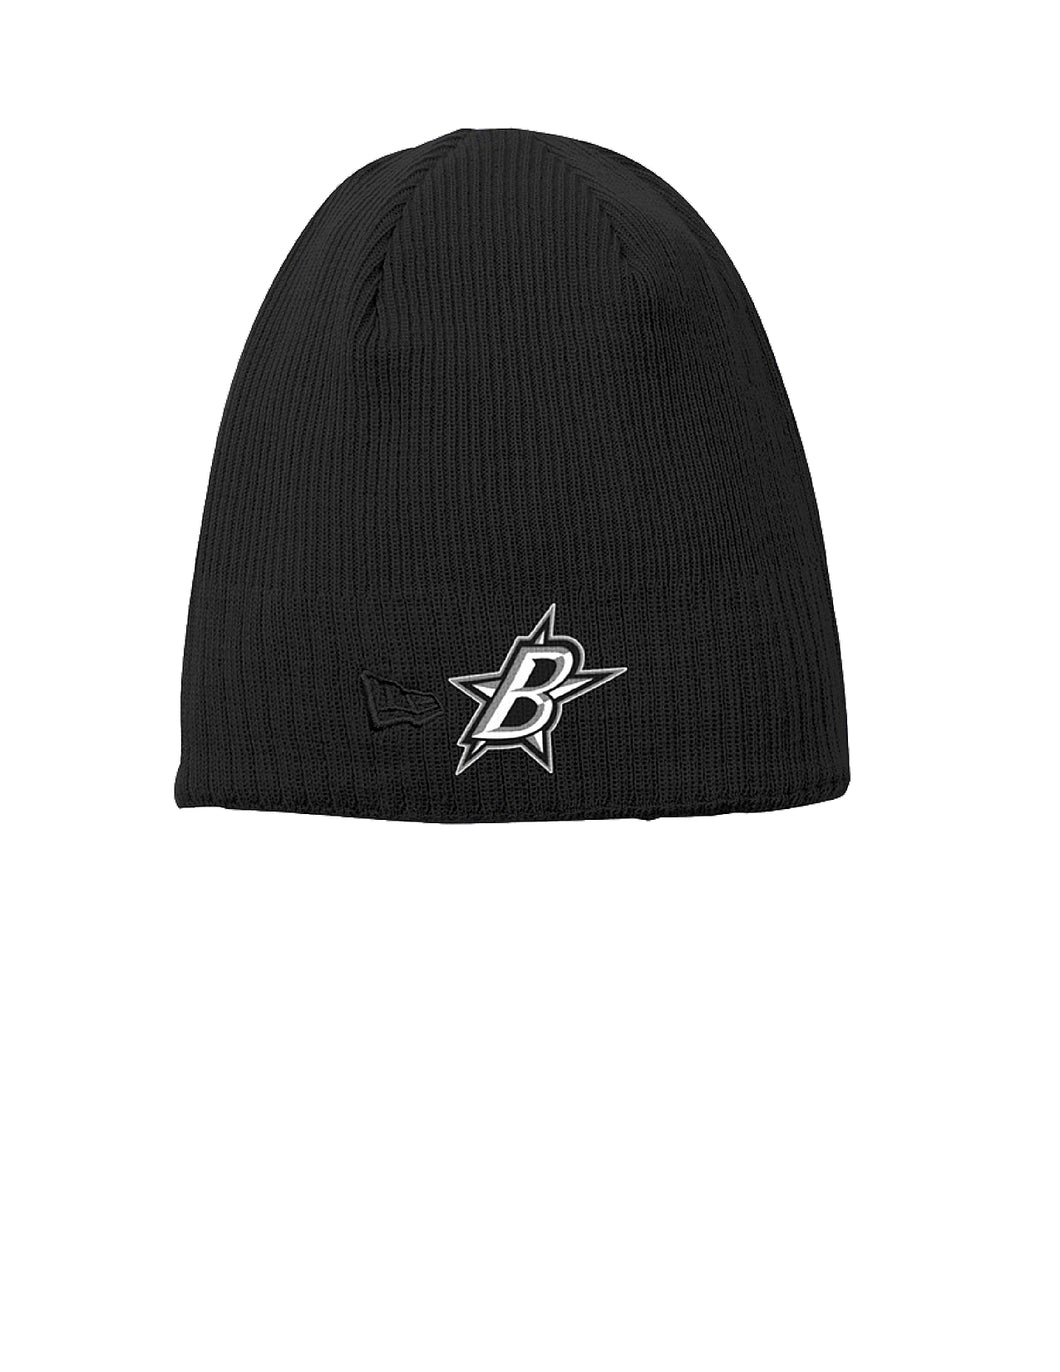 Black Stars New Era® Knit Beanie Black with Black Stars